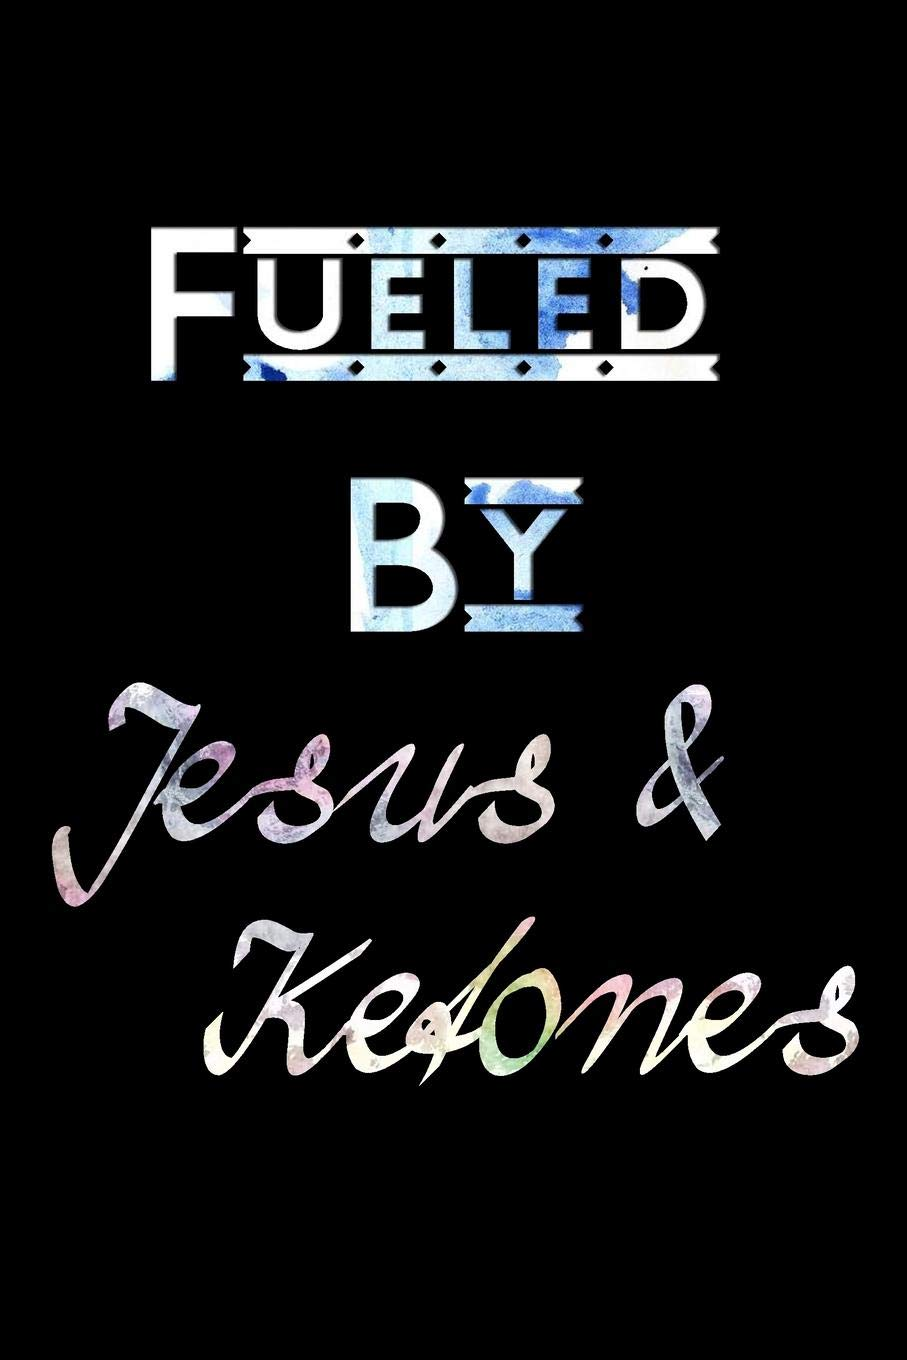 Fueled By Jesus Ketones Ketogenic Diet Meal Planner Track Plan Your Healthy Weight Loss Meals Weekly With Calendar Grocery List Make Your Own Breakfast Lunch Dinner 107